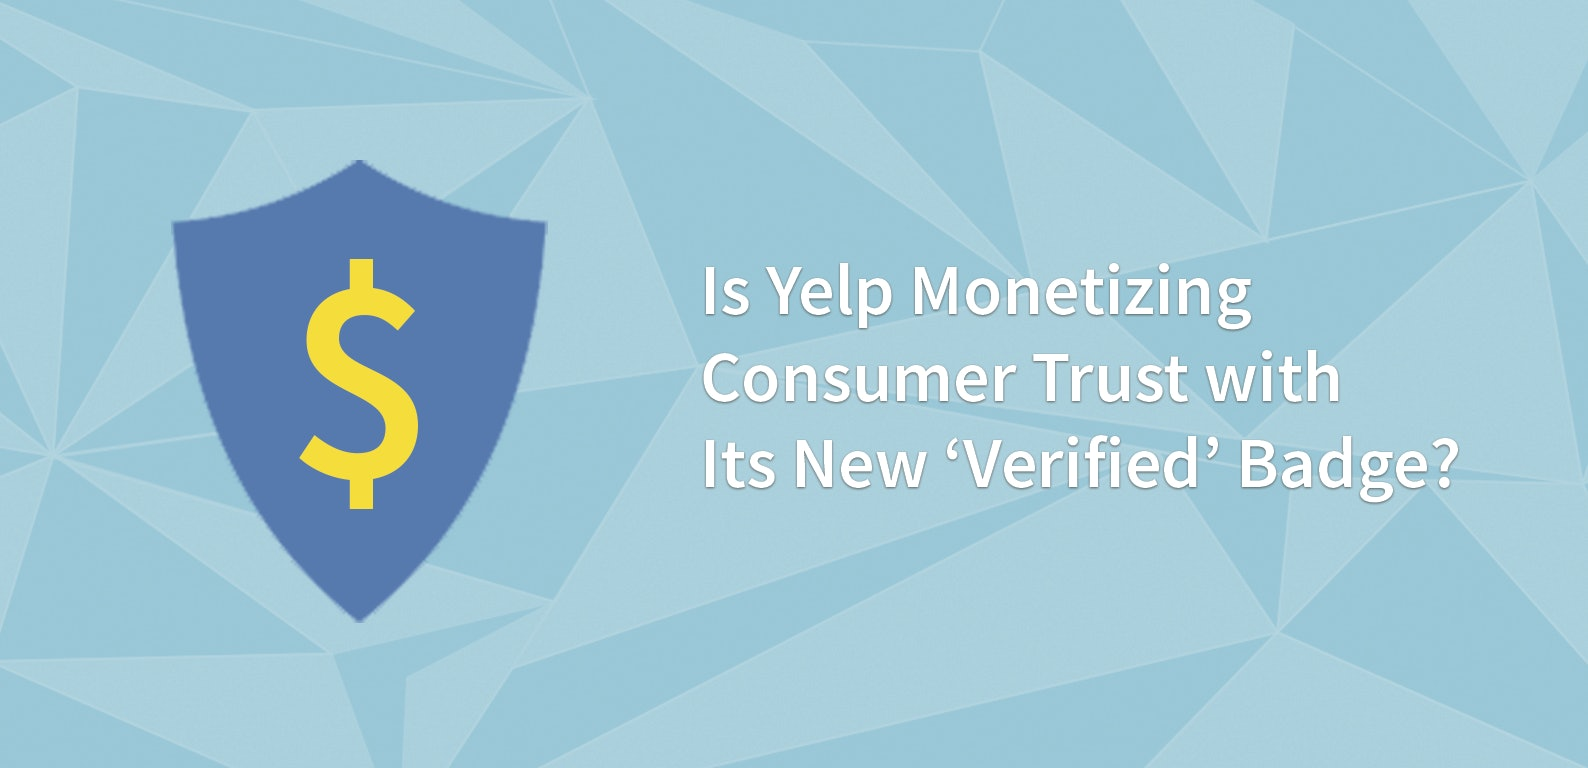 Is Yelp Monetizing Consumer Trust with Its New 'Verified' Badge?